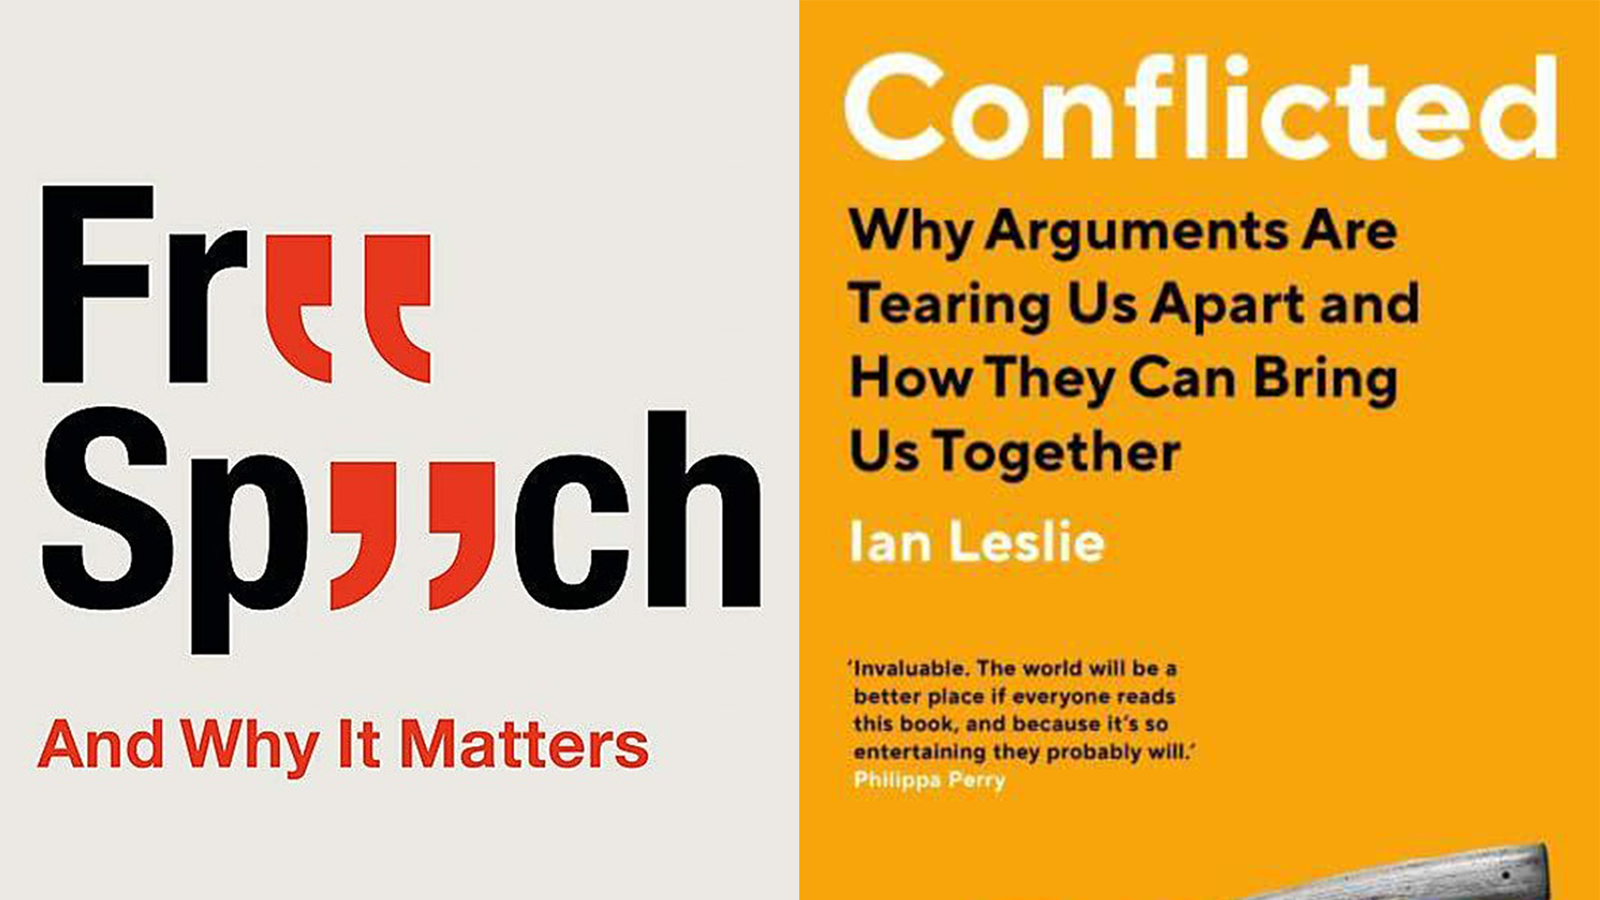 Andrew Doyle and Ian Leslie: How do we disagree?